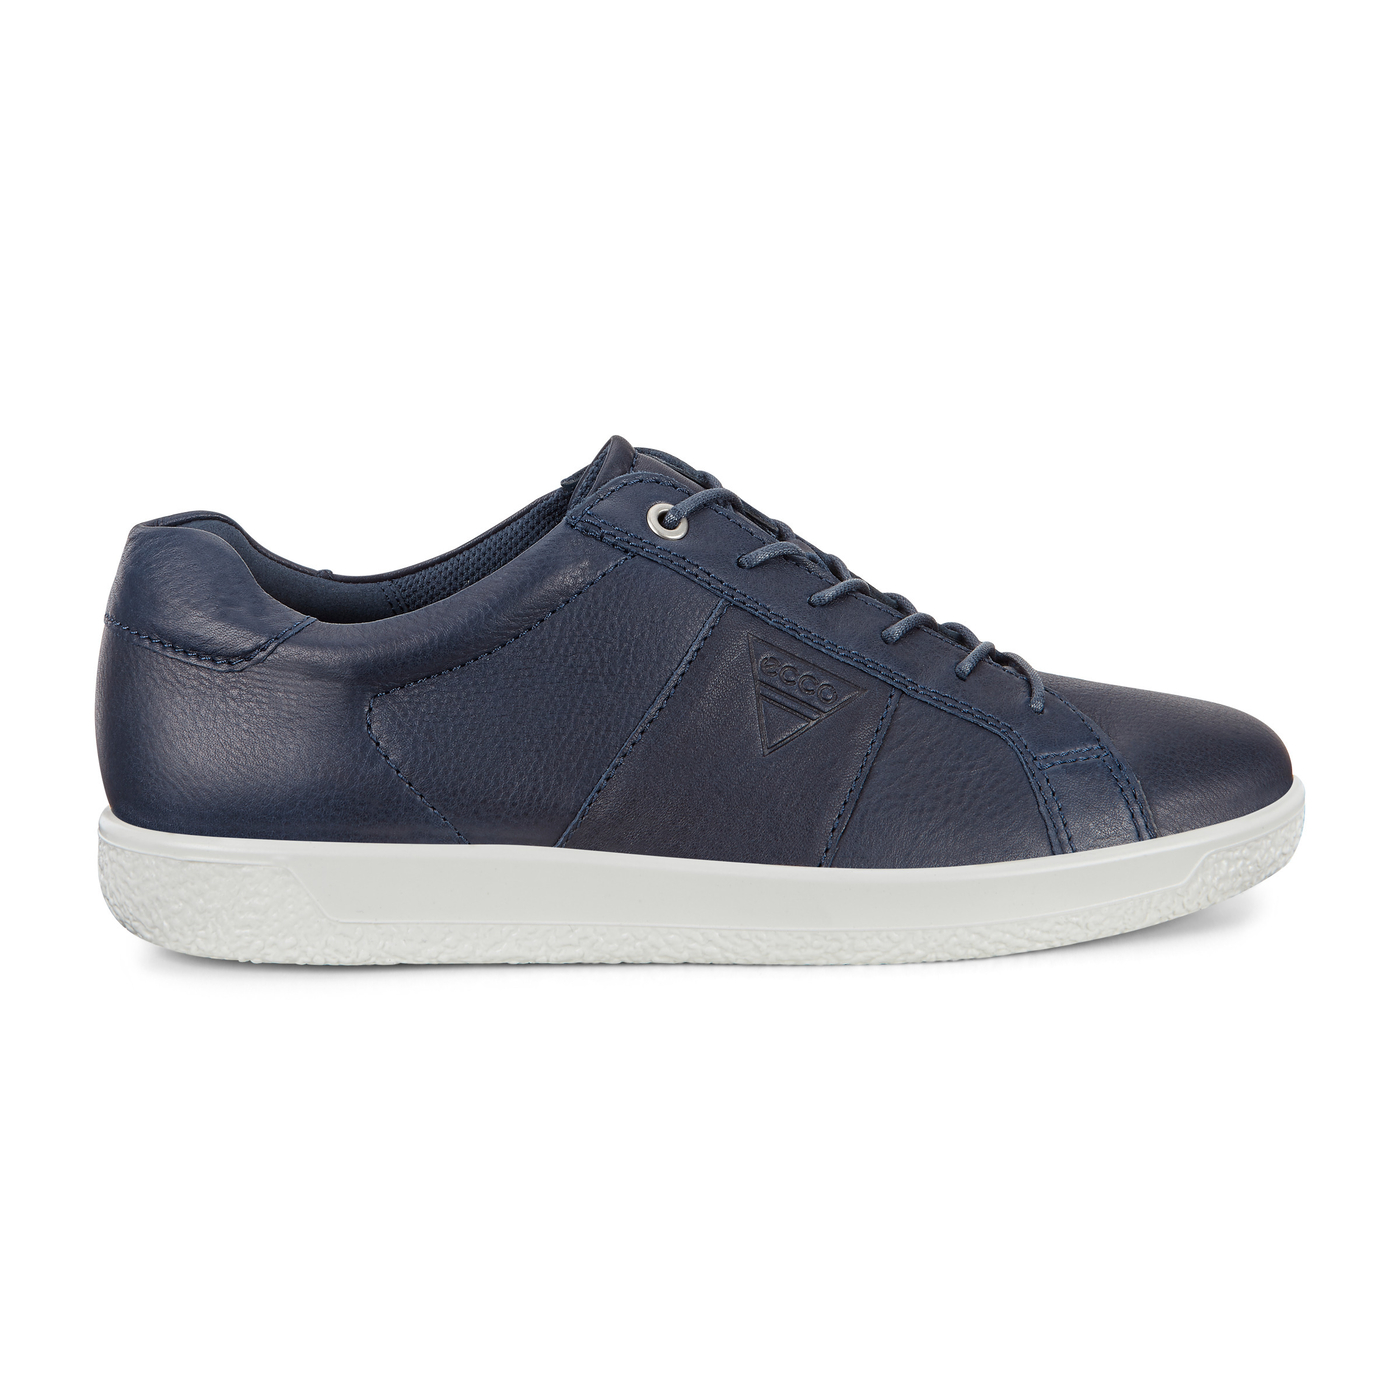 ECCO Soft 1 Men's